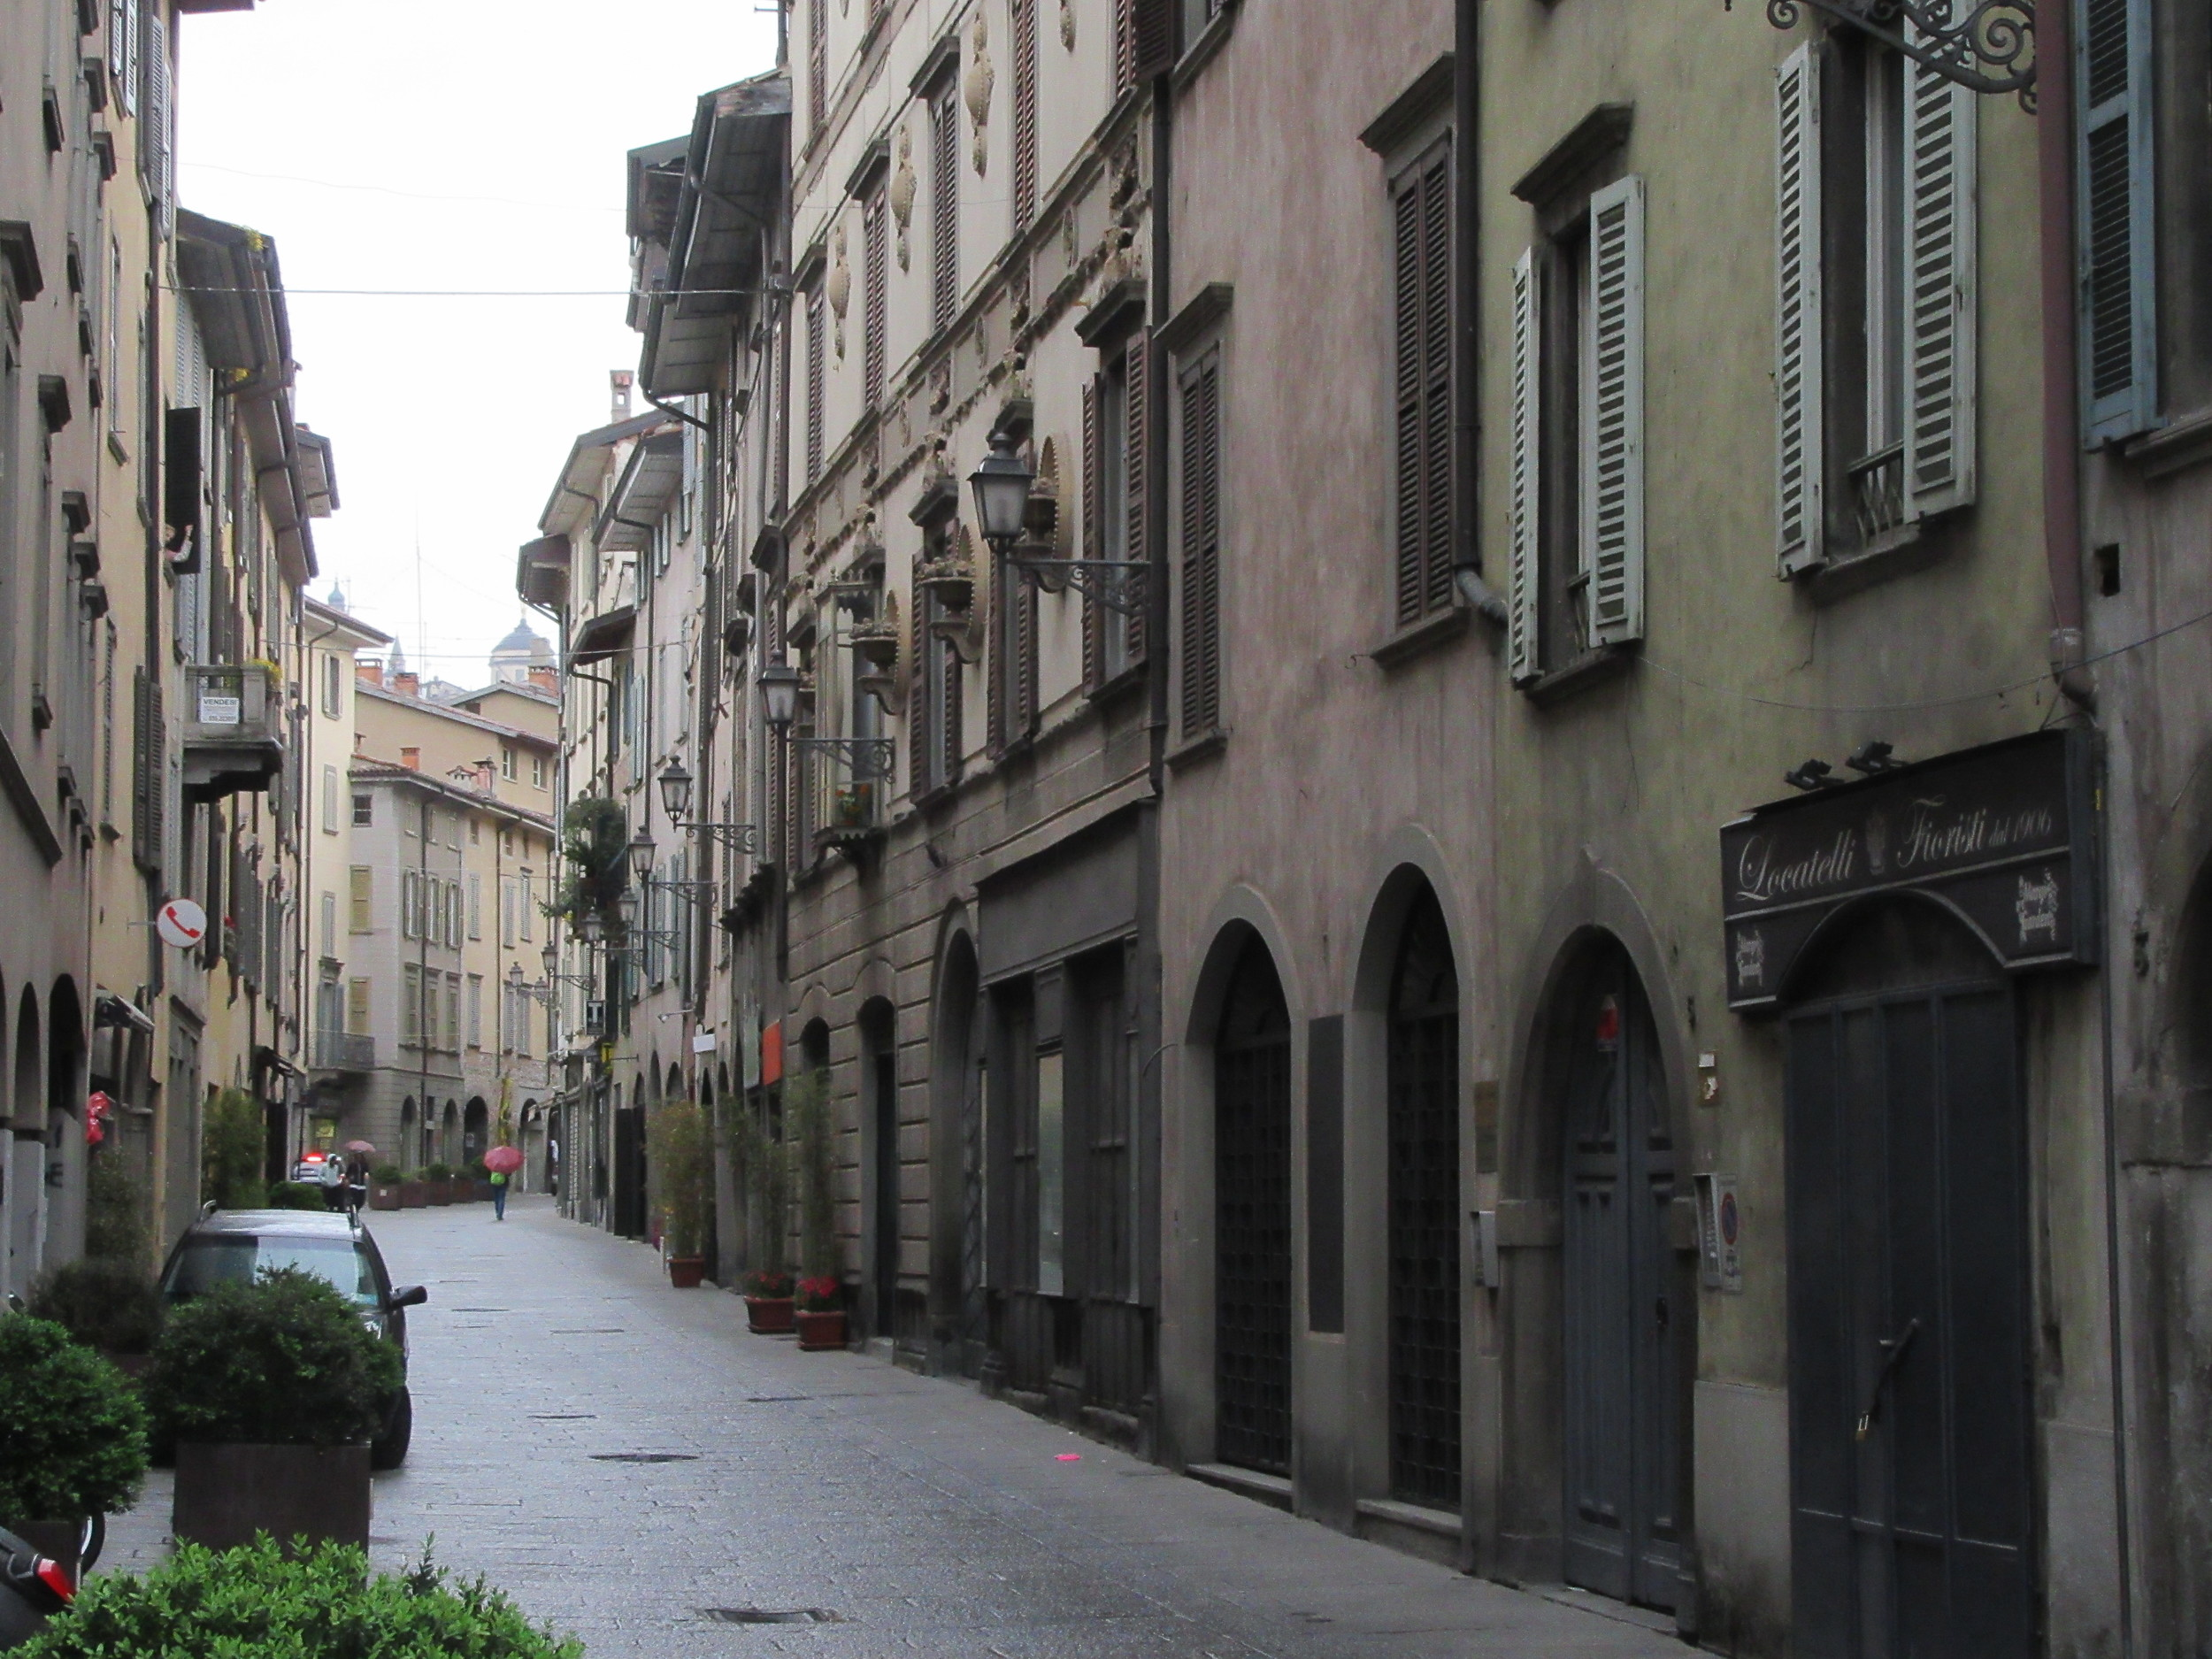 One of the streets in Bergamo. A slice of traditional Italy.